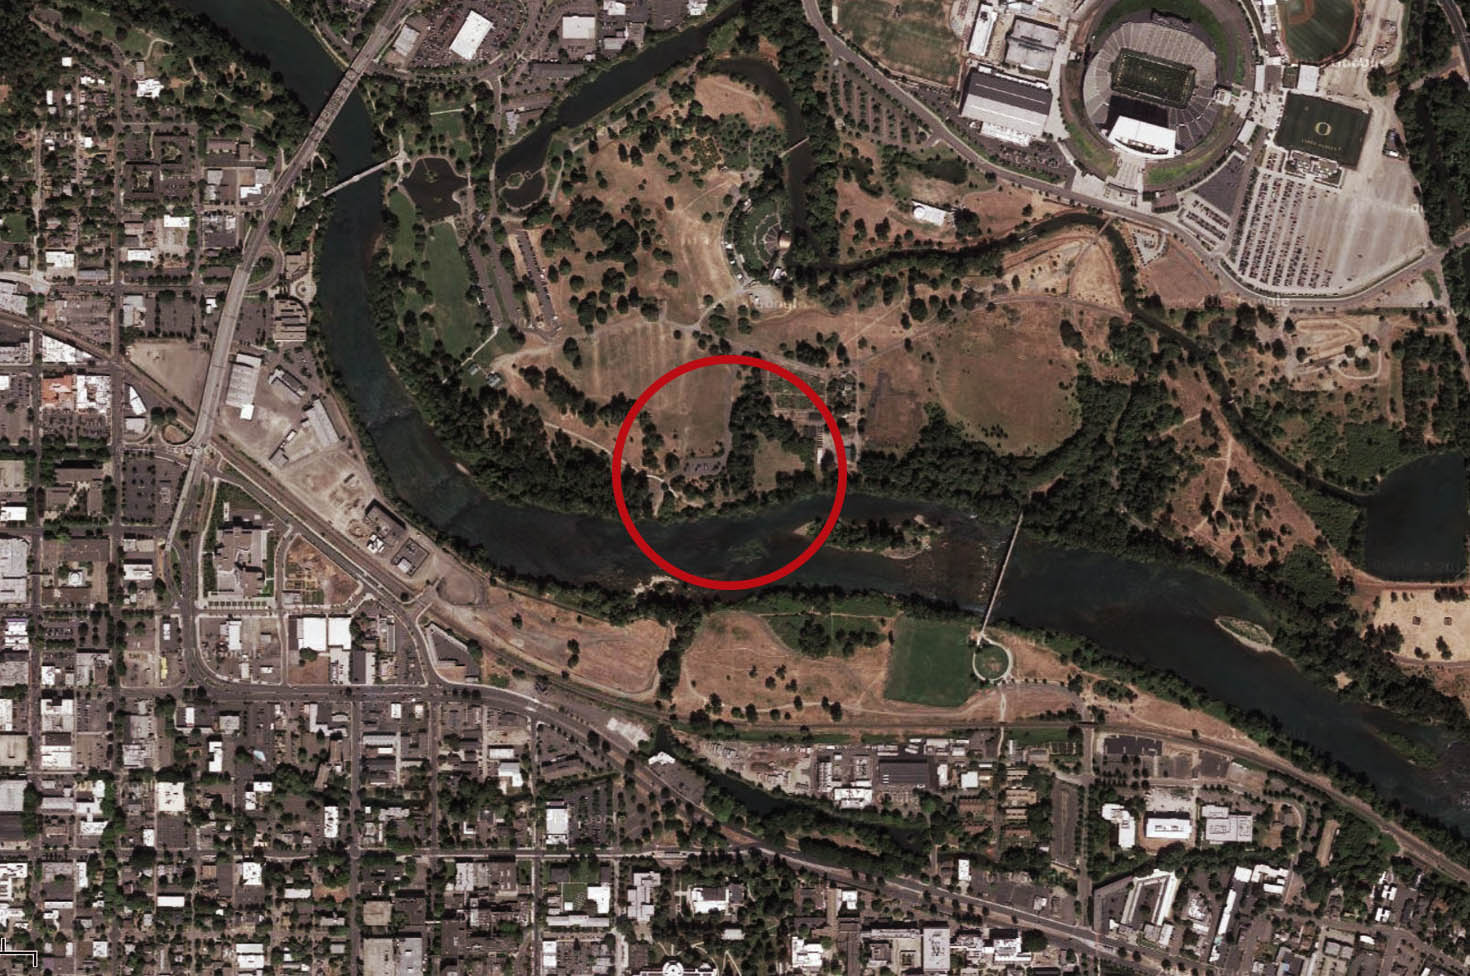 PNW Getty_Satelite_with circle